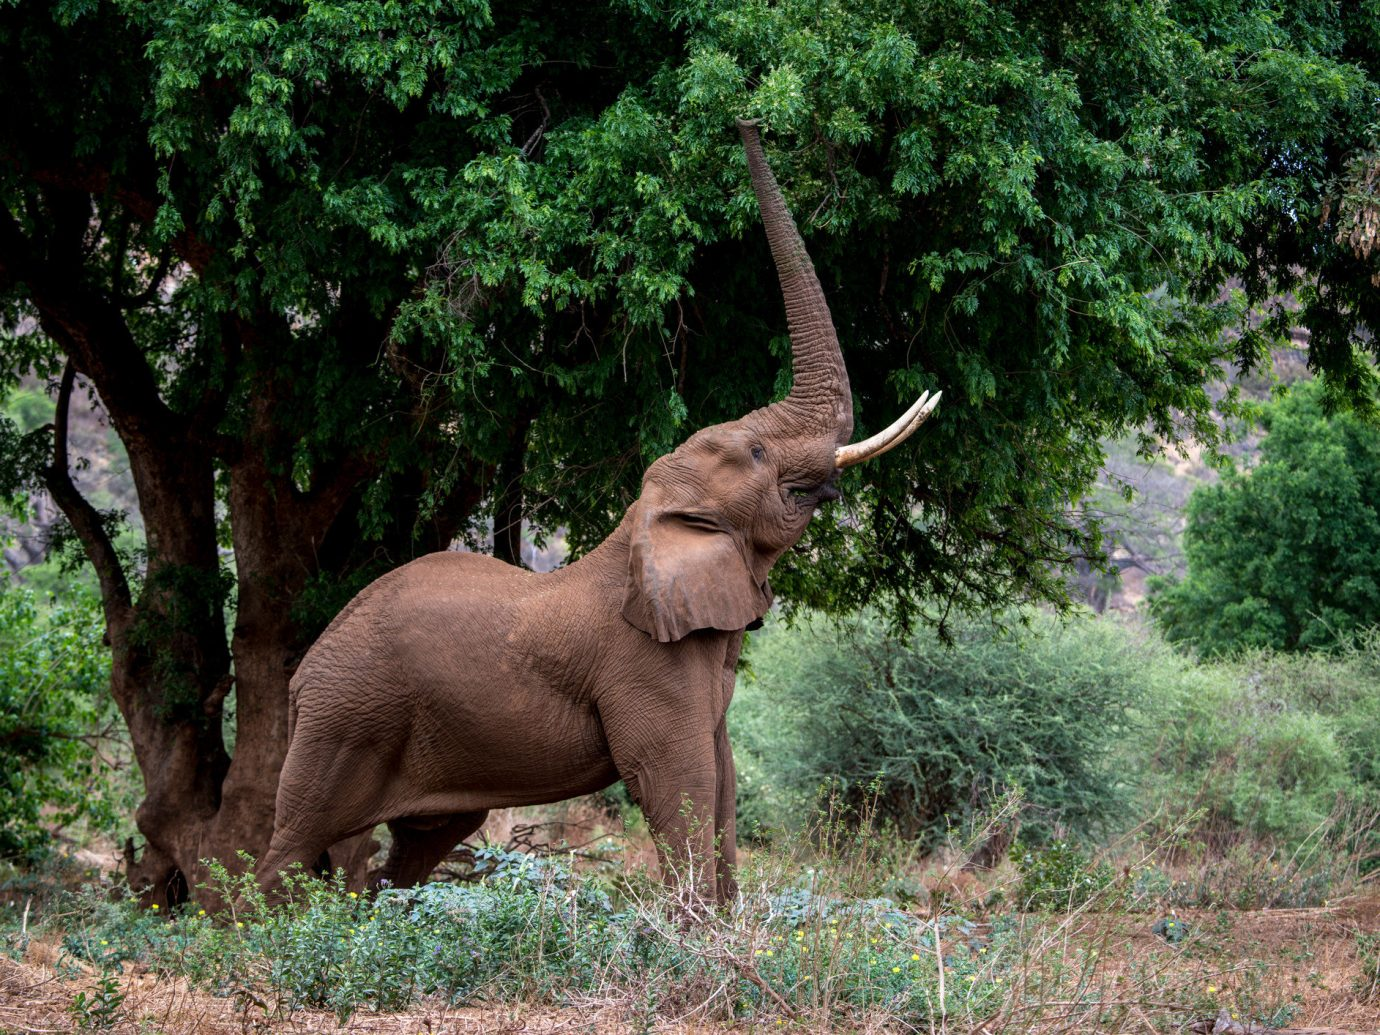 tree Trip Ideas outdoor elephant grass elephants and mammoths Wildlife terrestrial animal fauna indian elephant mammal wilderness nature reserve african elephant tusk national park Forest standing woodland Jungle organism plant green Safari bushes trunk wooded lush